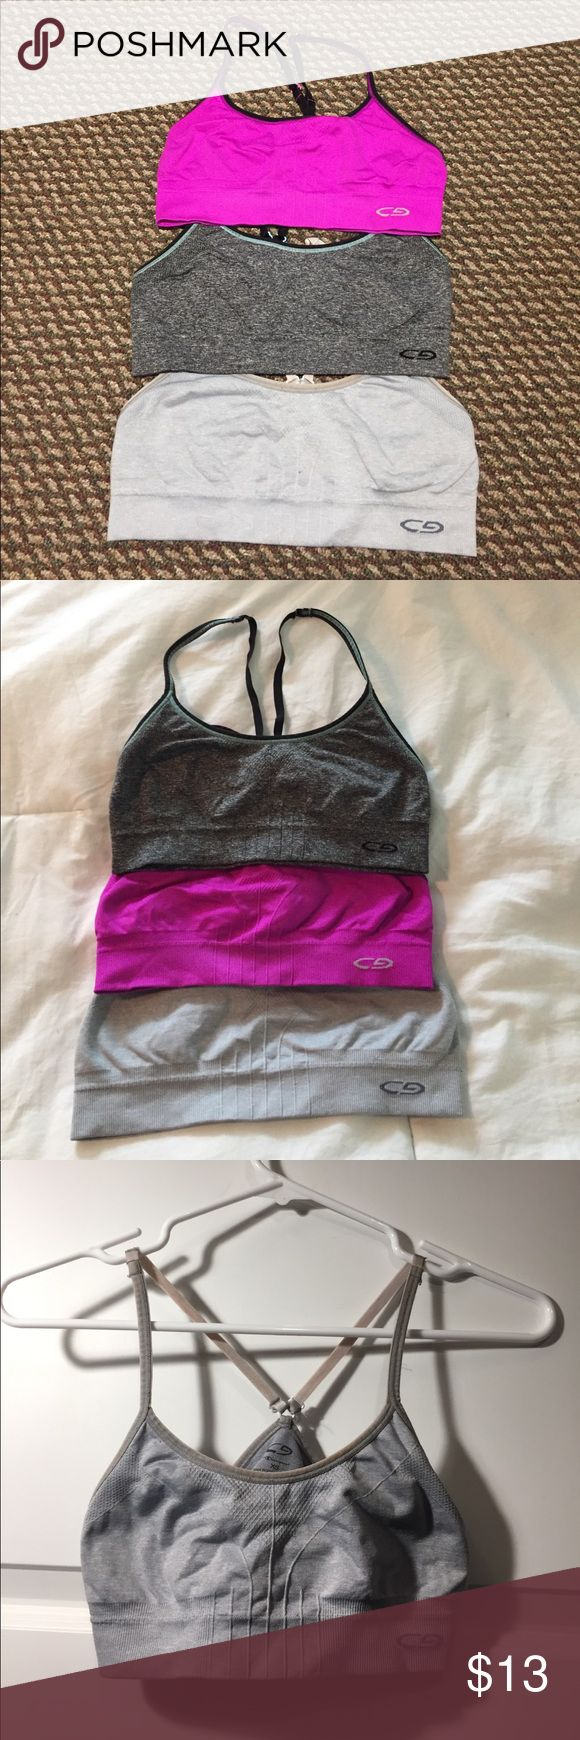 BUNDLE 3 Champion Sports Bras Bundle of three Champion C9 Seamless Cami sports bras, retailing for $17 EACH but only $13 for all three of these! All in size XS, in magenta, light gray, and charcoal gray. The light gray sports bra's straps are tinted slightly pink due to a laundry mishap but other than that they are in great condition. The last photo shows a model wearing the same bra in a different color. Offers are welcome and feel free to leave any questions below. Champion Intimates…